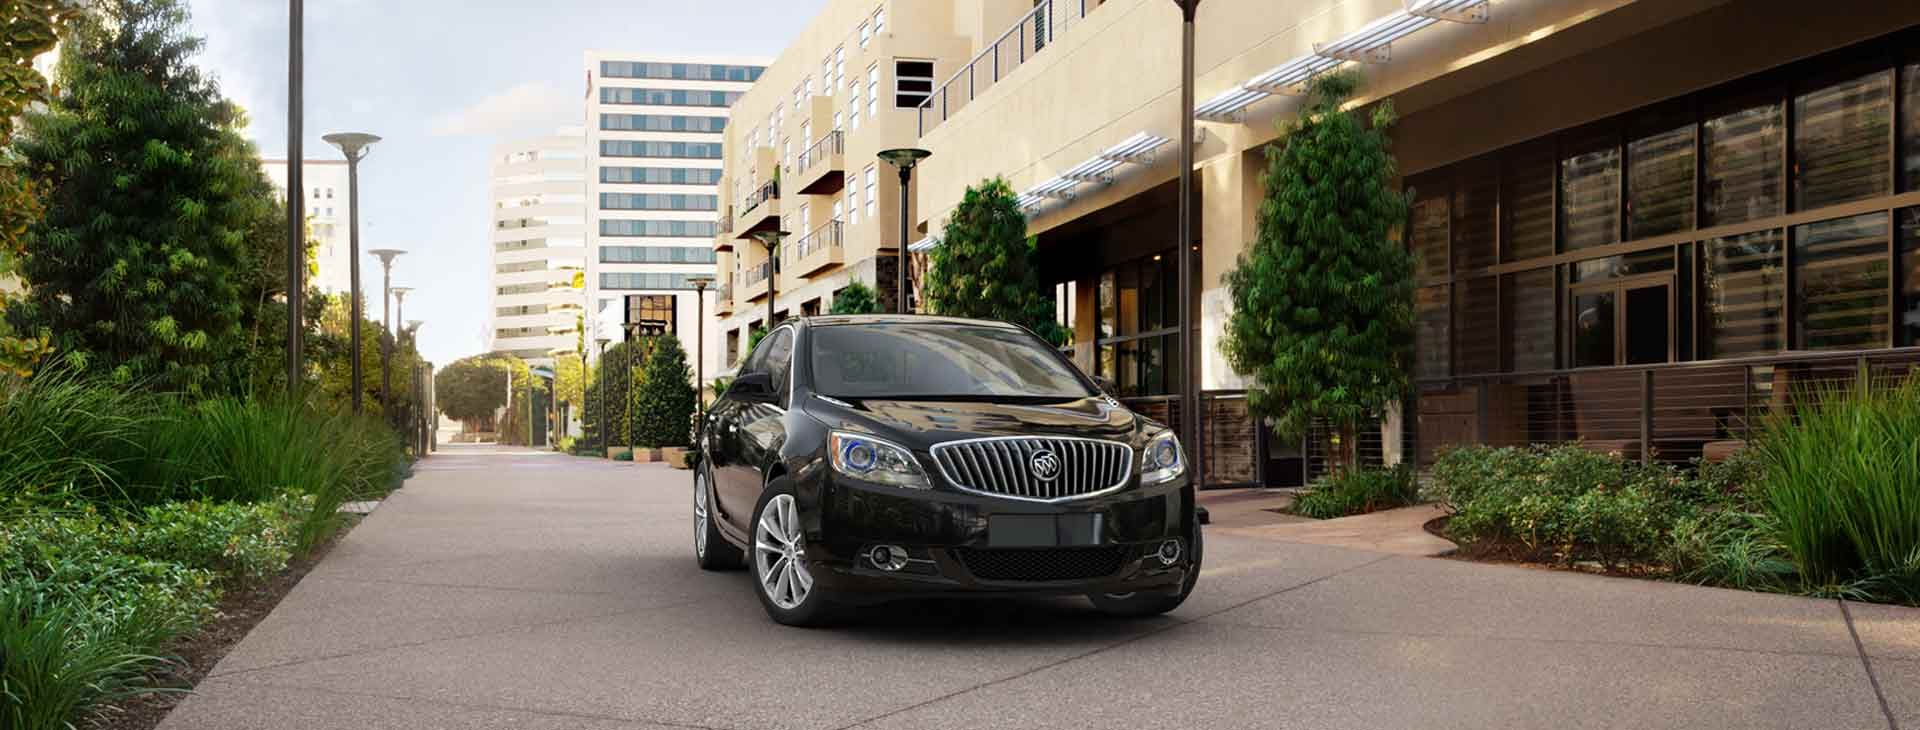 New Buick Verano   Buy  Lease  or Finance   Gainesville  FL 32609 New Buick Verano for Sale Gainesville FL